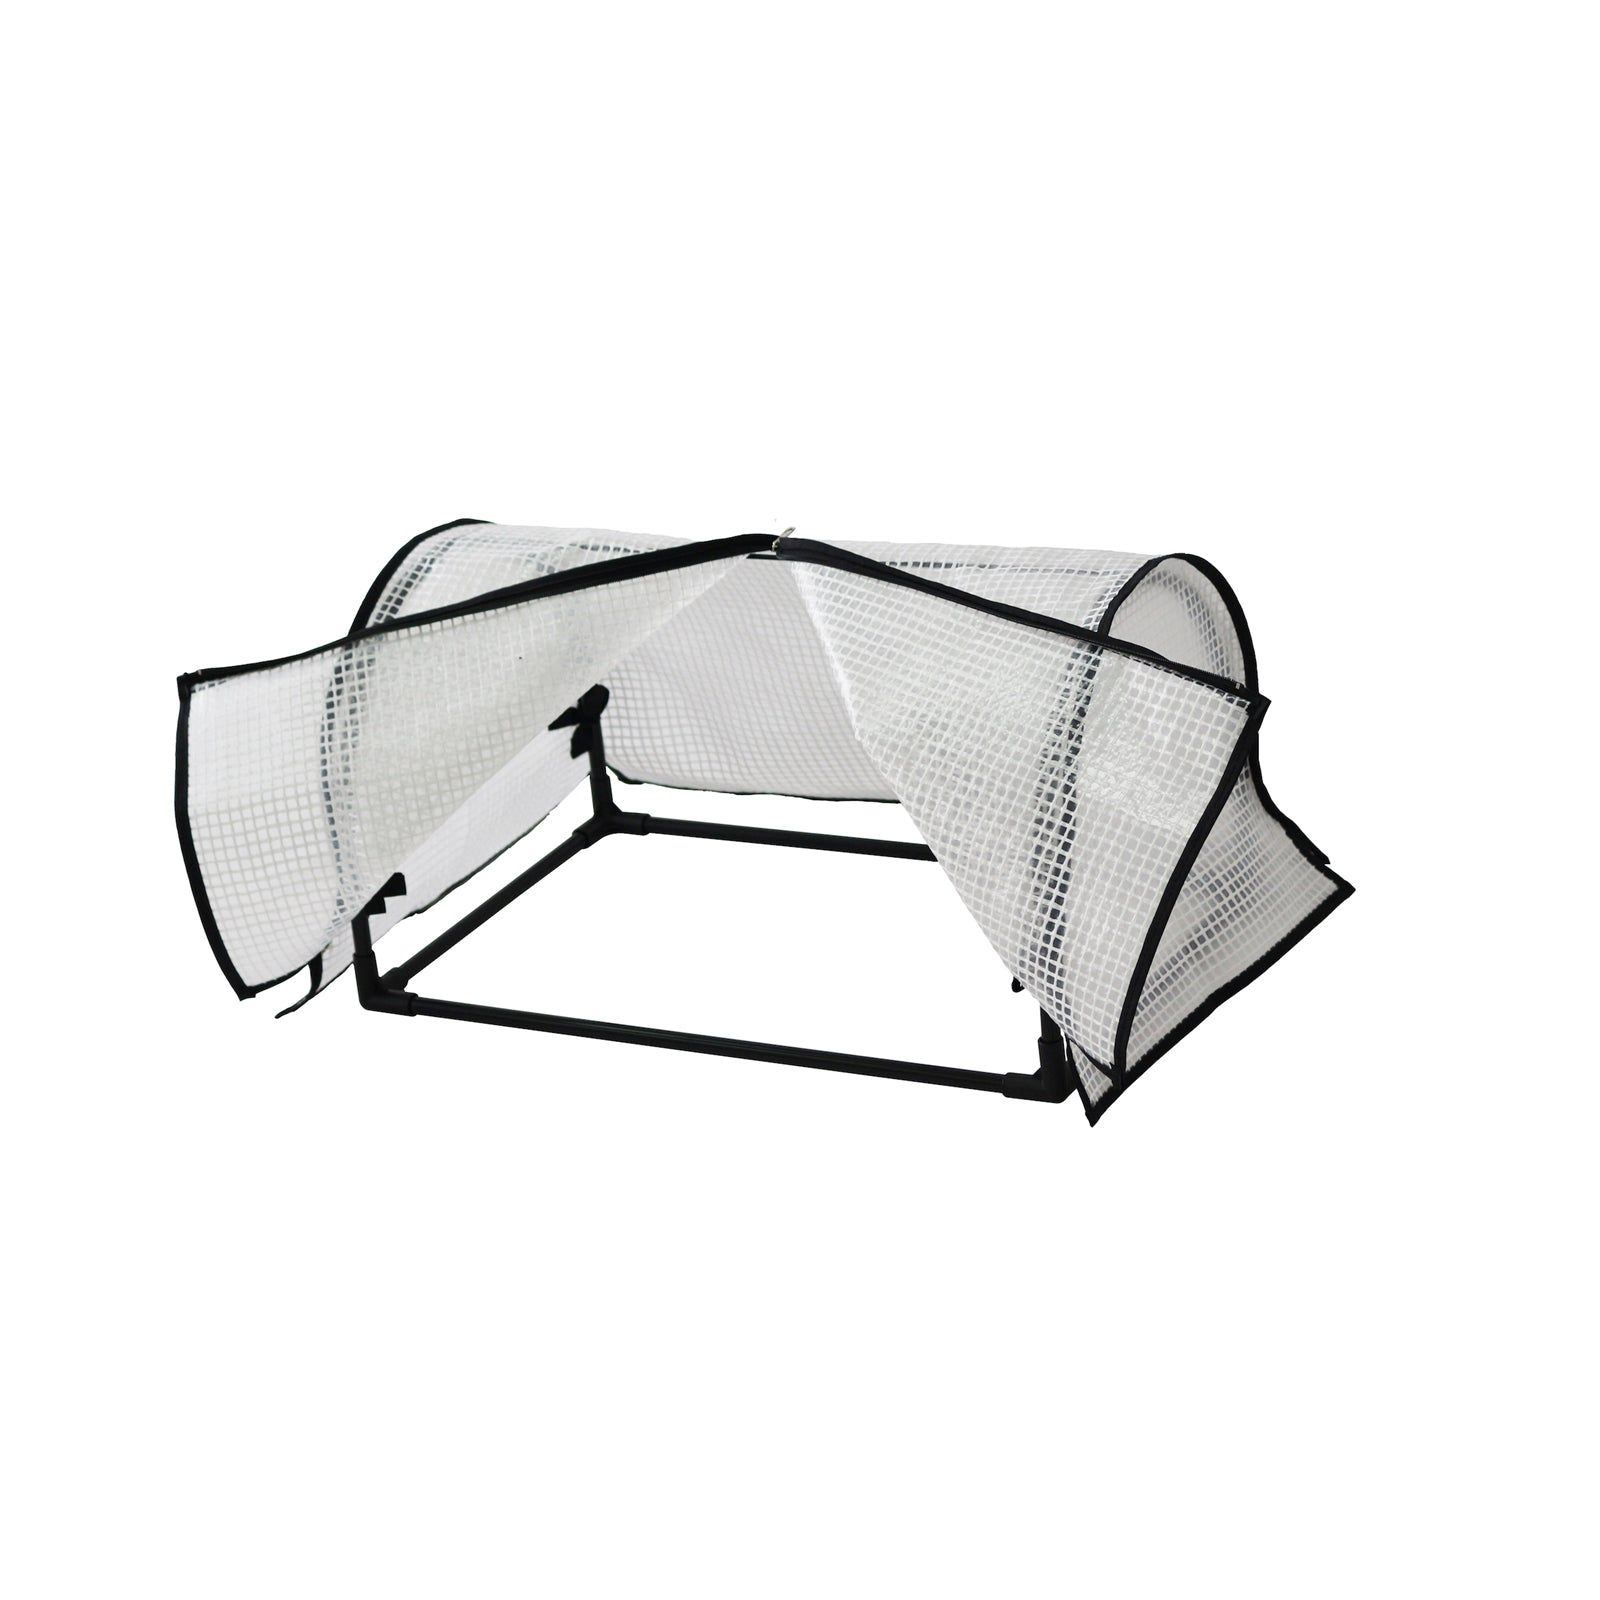 VegTrug Poppy Greenhouse Covers - GardenPromos